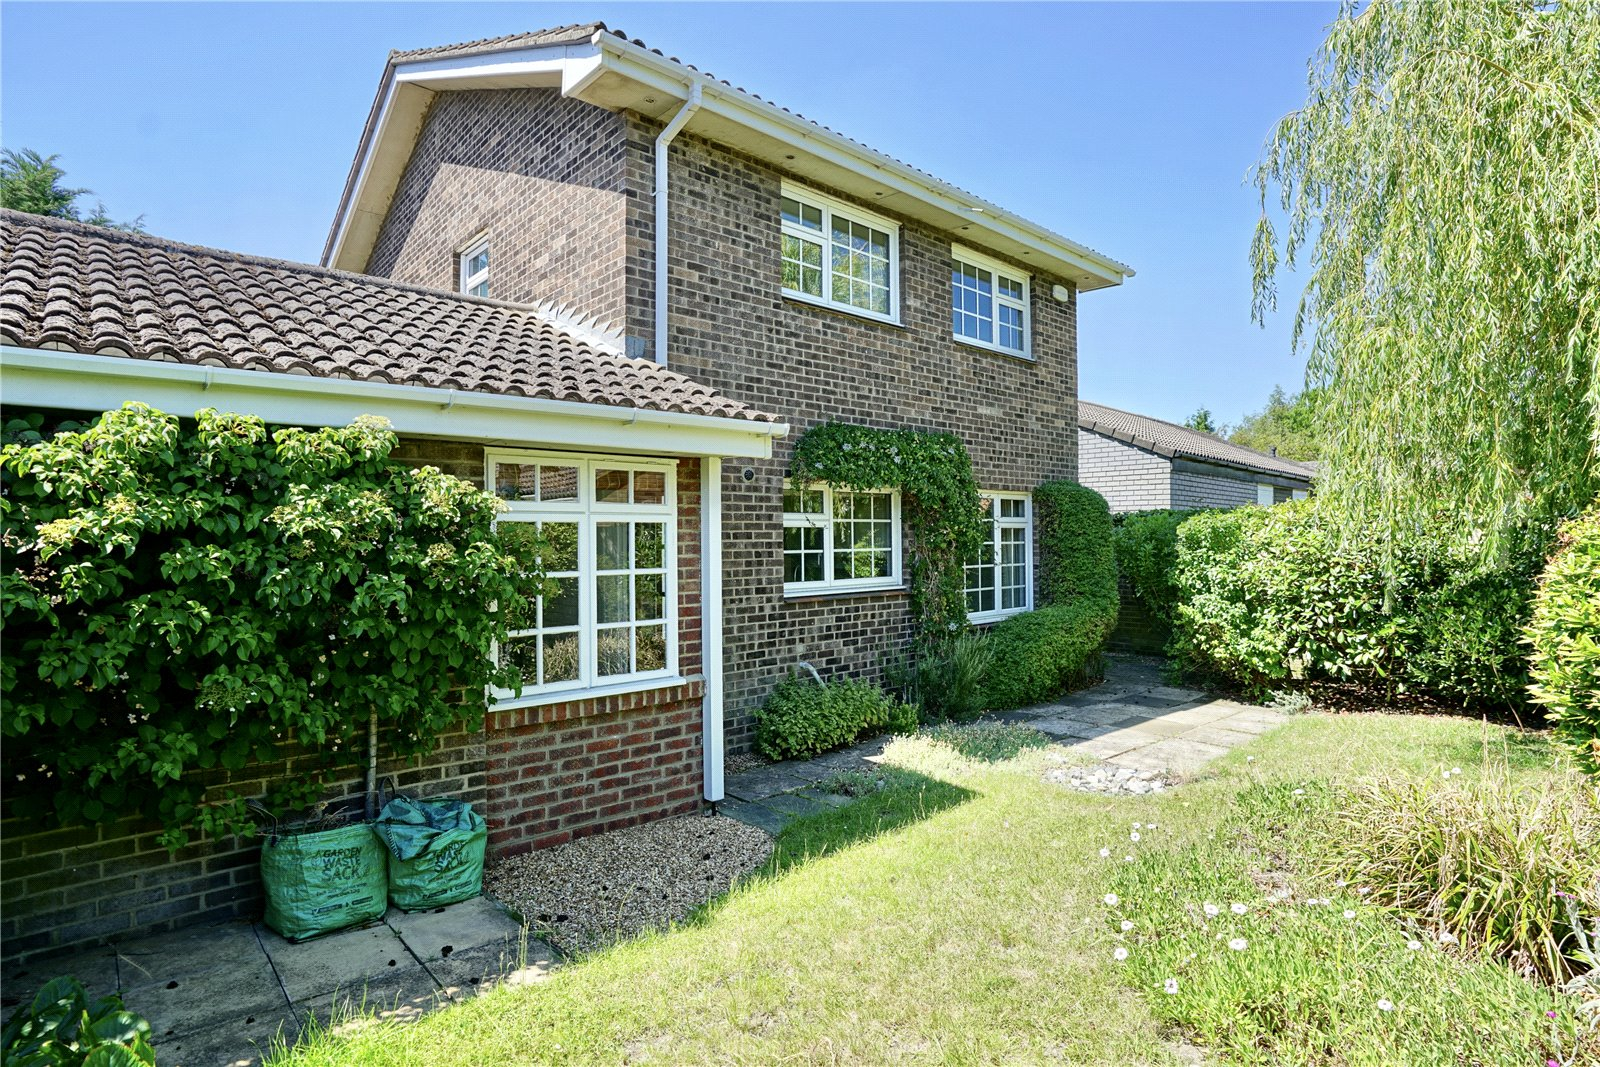 4 bed house for sale in All Hallows, Sandy  - Property Image 12